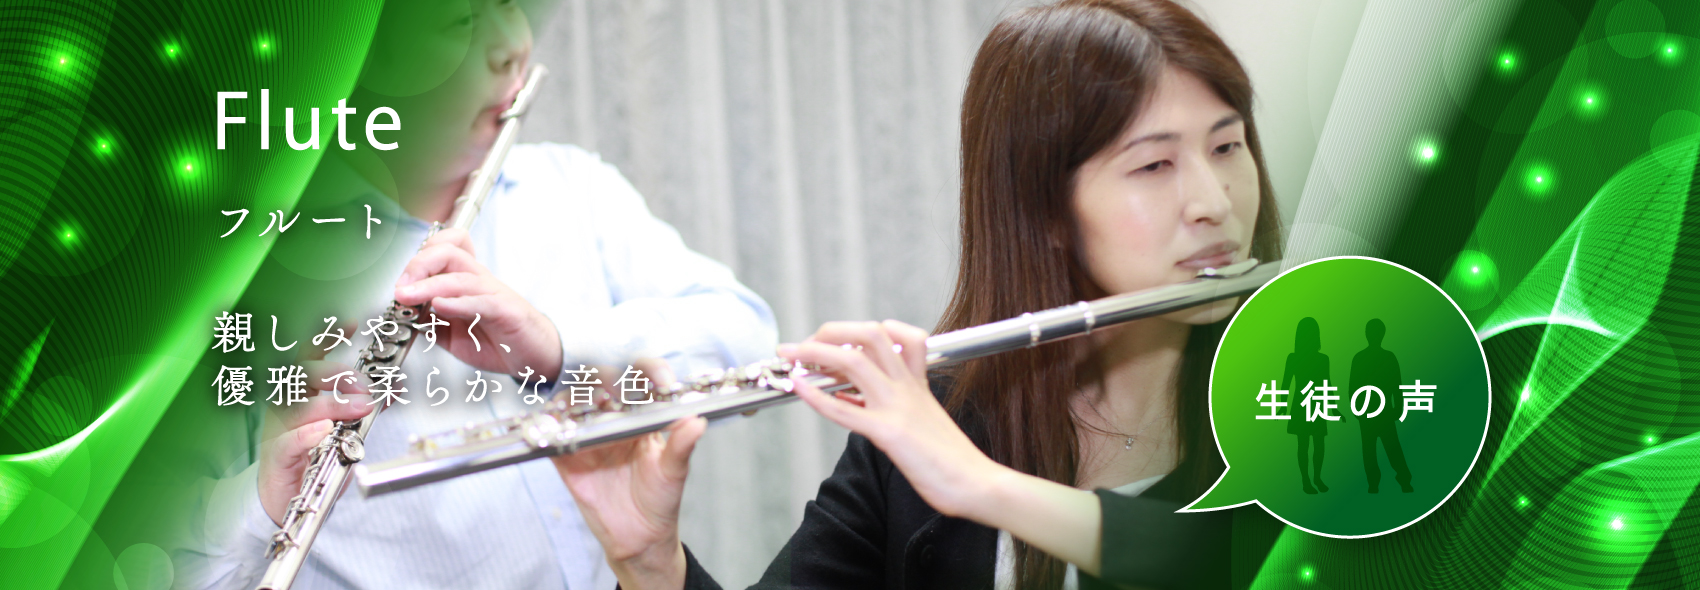 Flute 親しみやすく 優雅で柔らかな音色